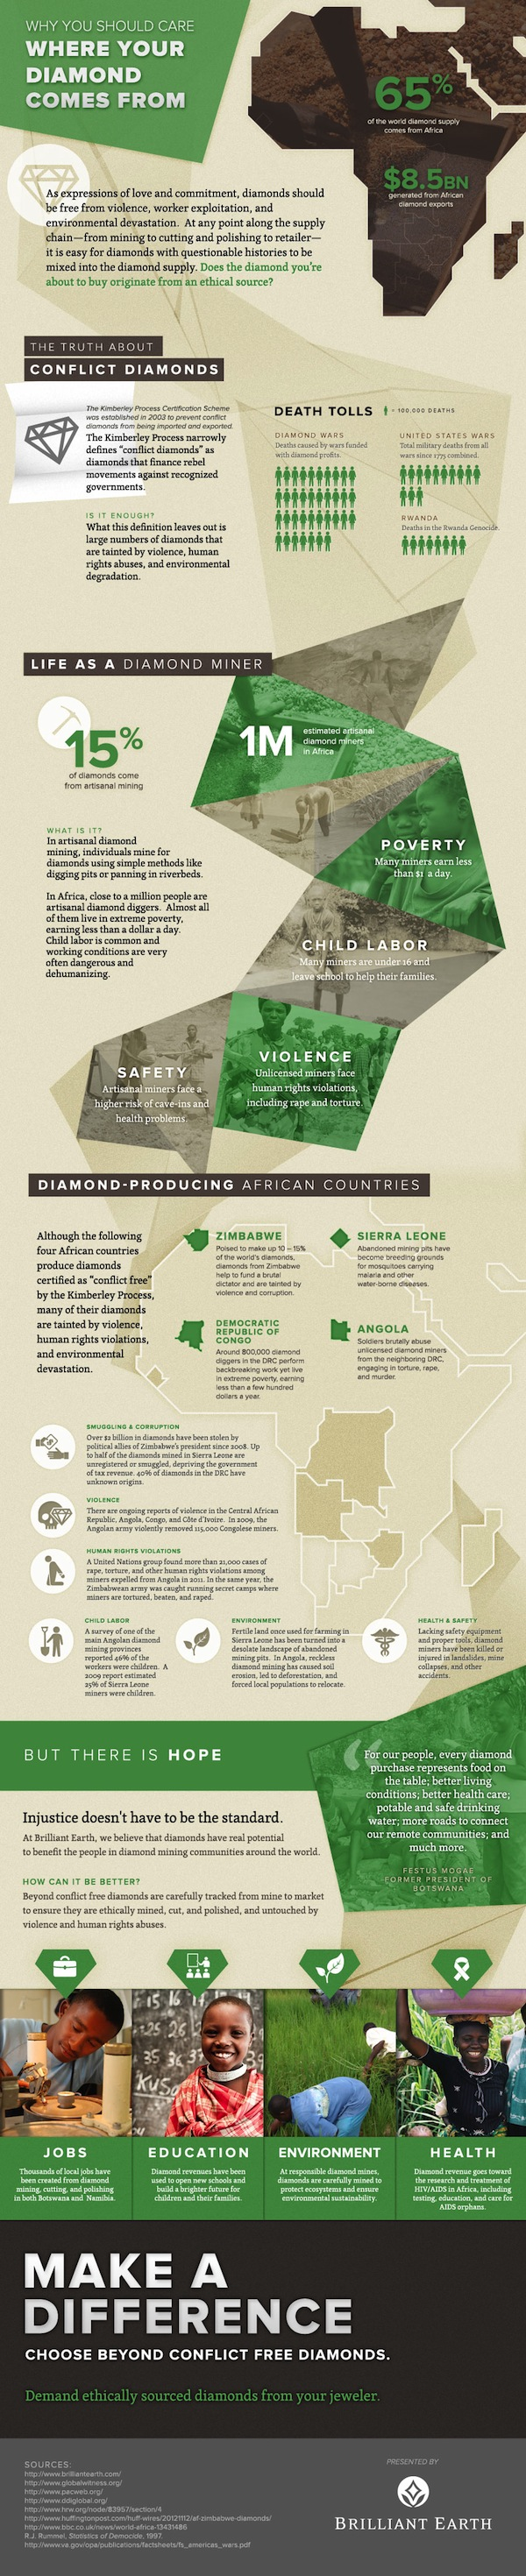 The-Truth-About-Conflict-Diamonds-Infographic